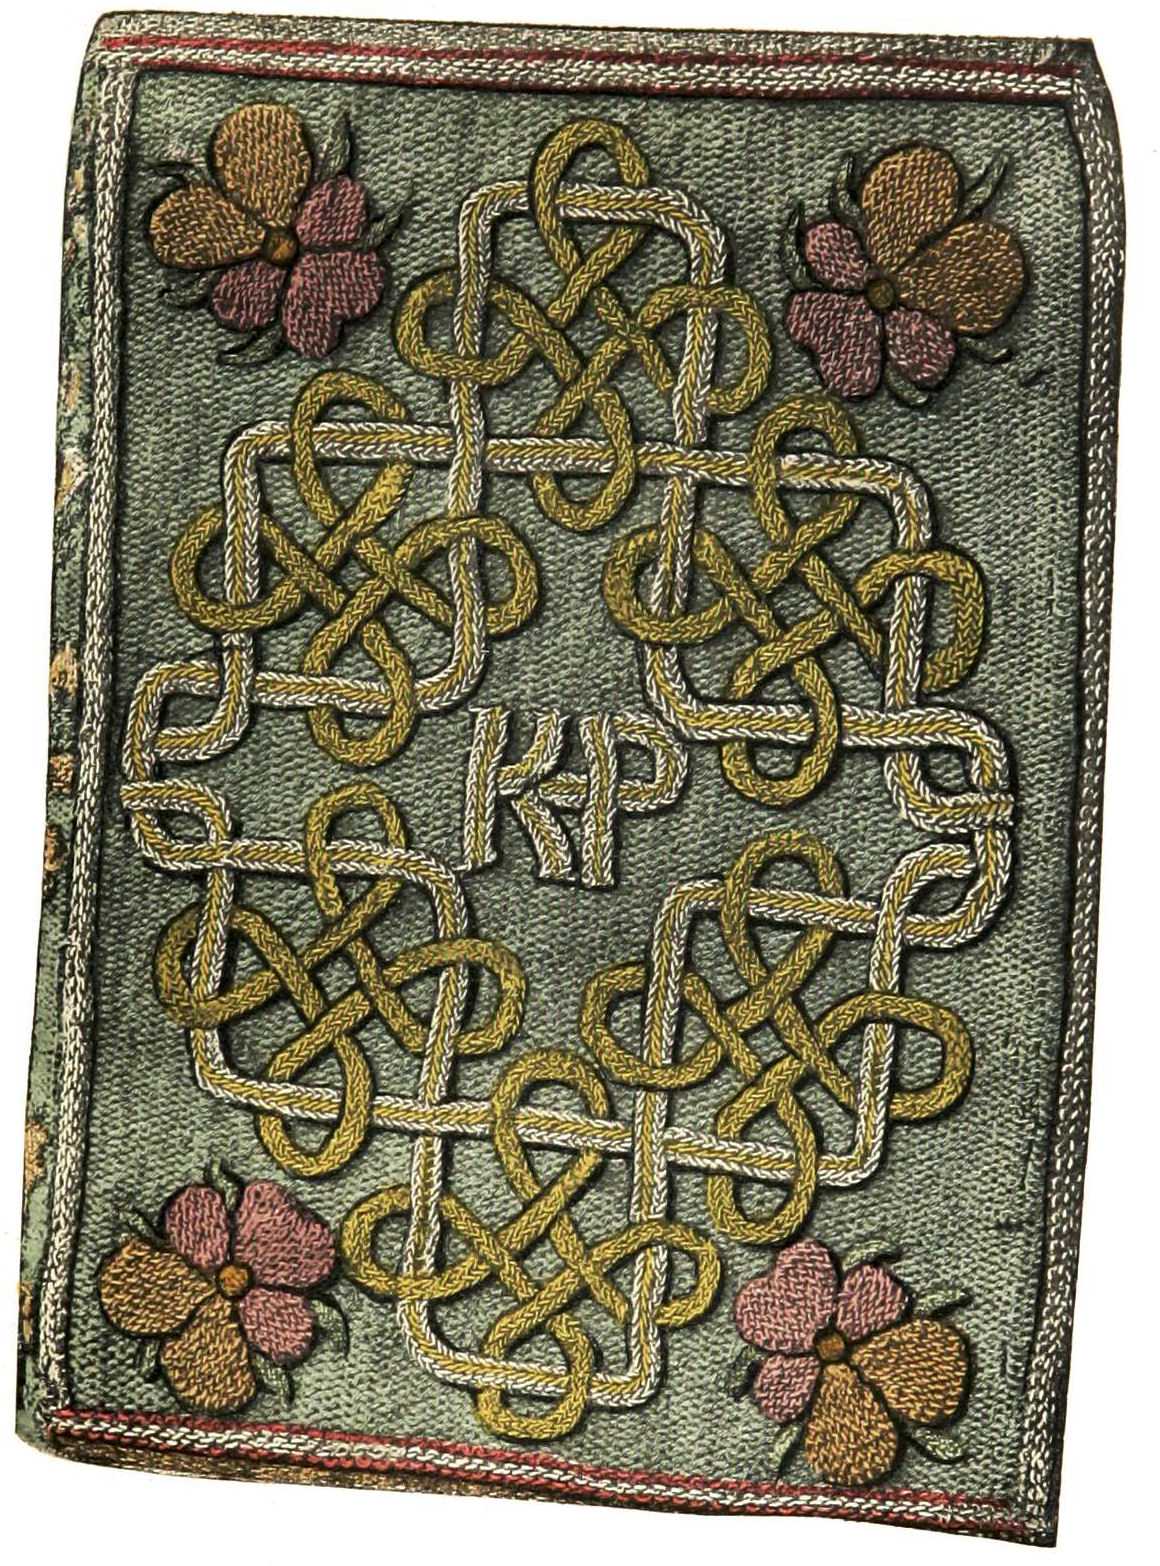 The Miroir or Glasse of the Synneful Soul, a translation from the French, by Elizabeth, presented to Catherine Parr in 1544. The embroidered binding with the monogram KP for